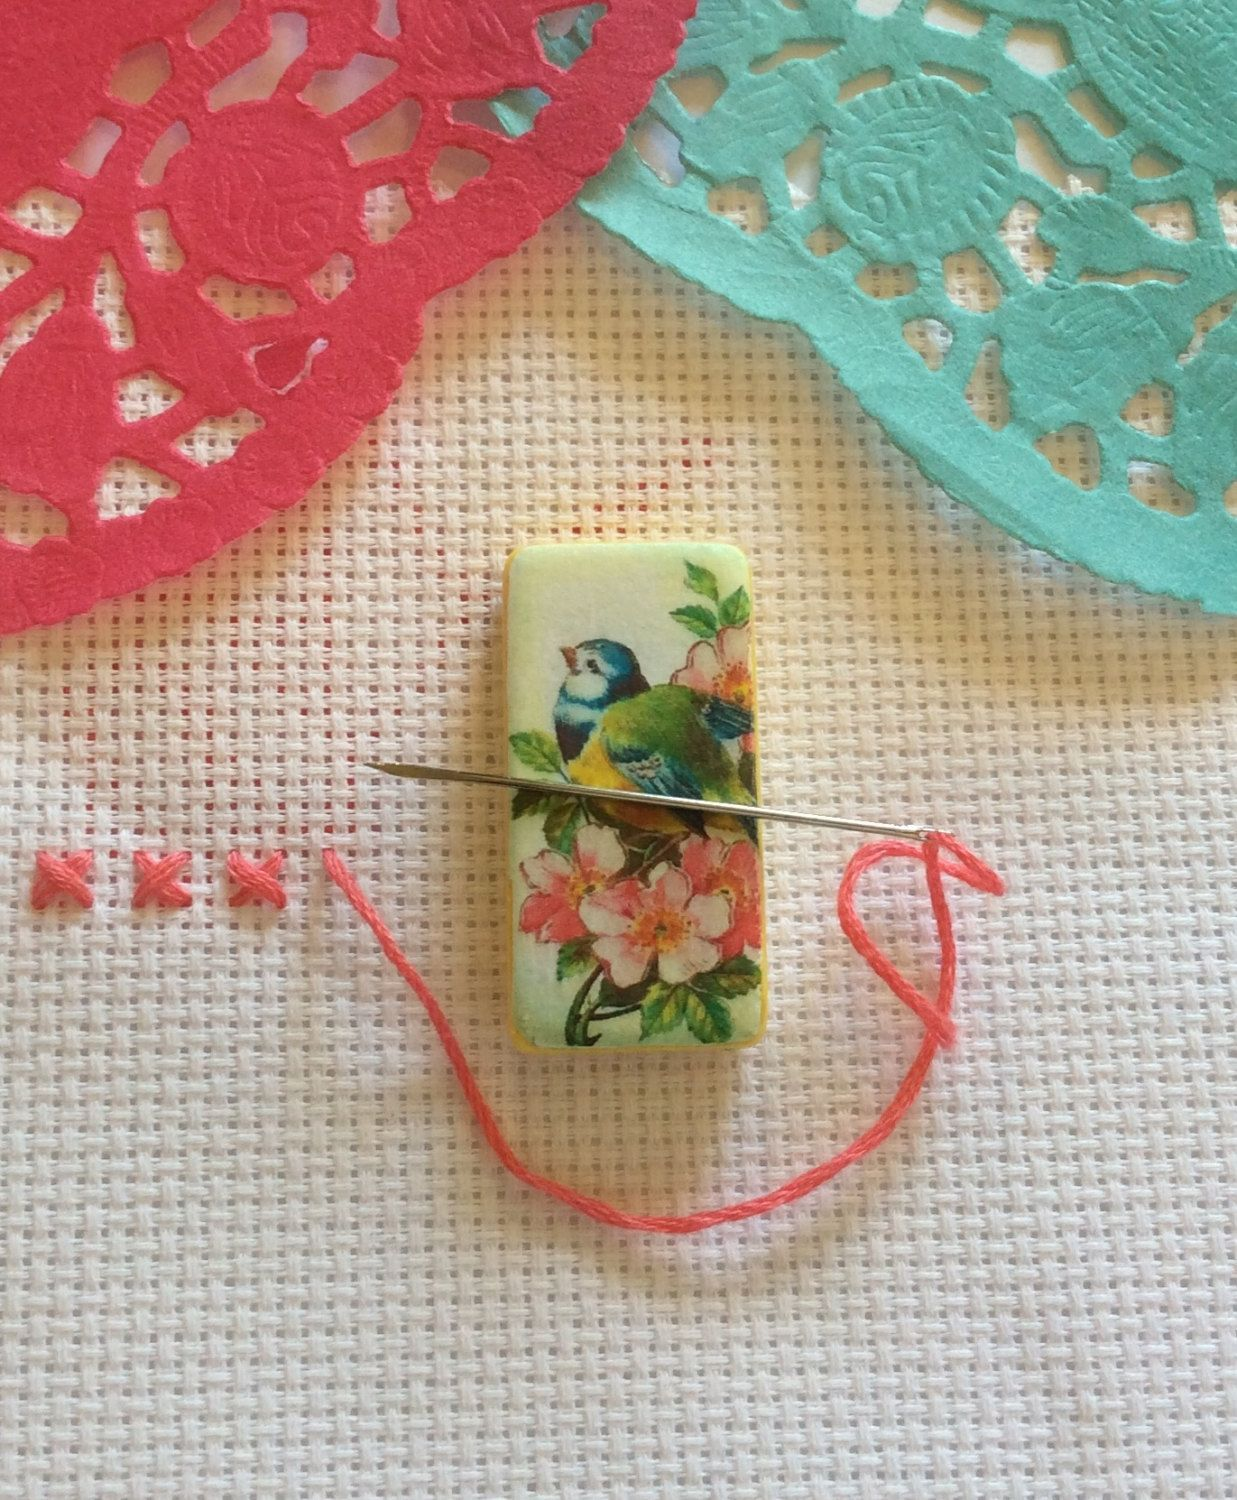 Needle minder bird spring easter magnetic cross stitch needle minder bird spring easter magnetic cross stitch sewing needle negle Images